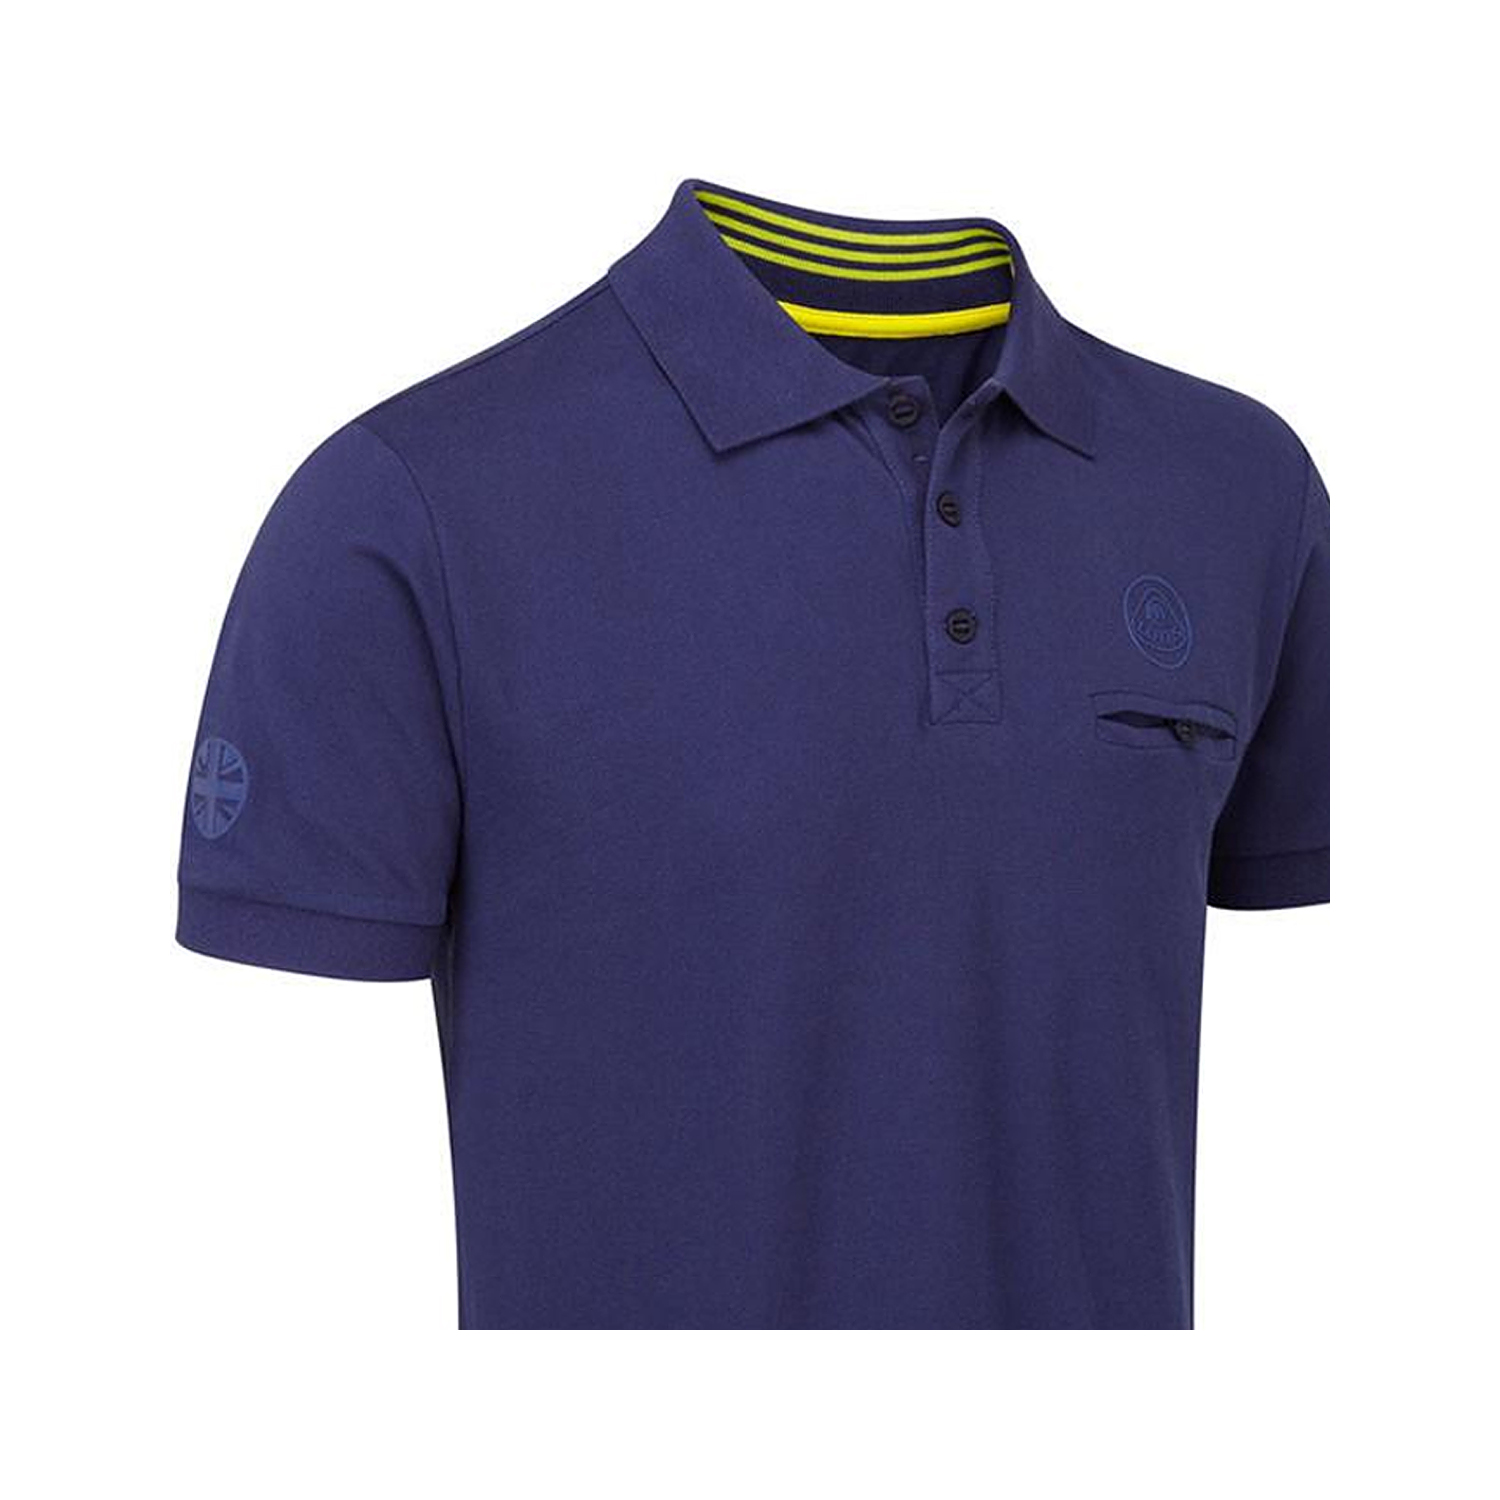 2017 lotus racing men 39 s logo polo shirt blue clothing for Polo shirts with logos